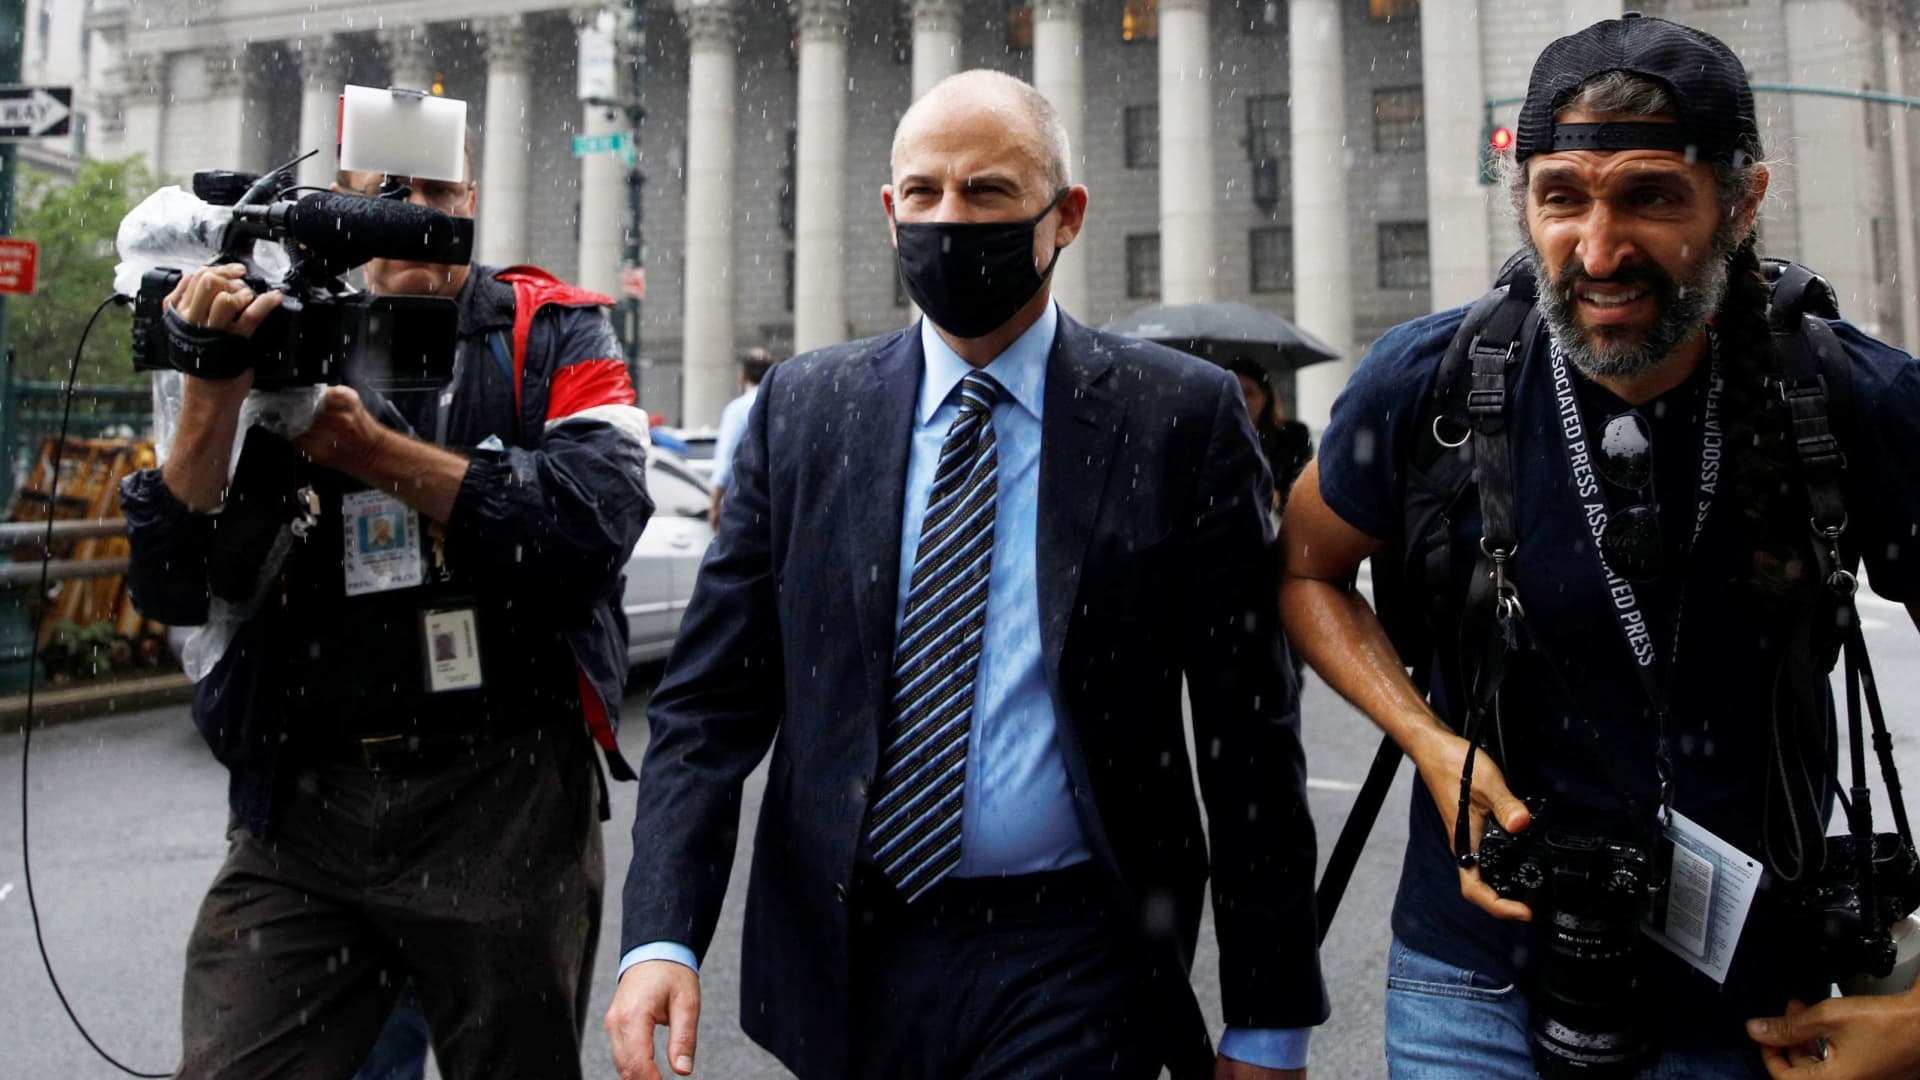 Attorney Michael Avenatti exits, following his sentencing for an extortion scheme against Nike Inc., at the United States Courthouse in New York City, July 8, 2021.